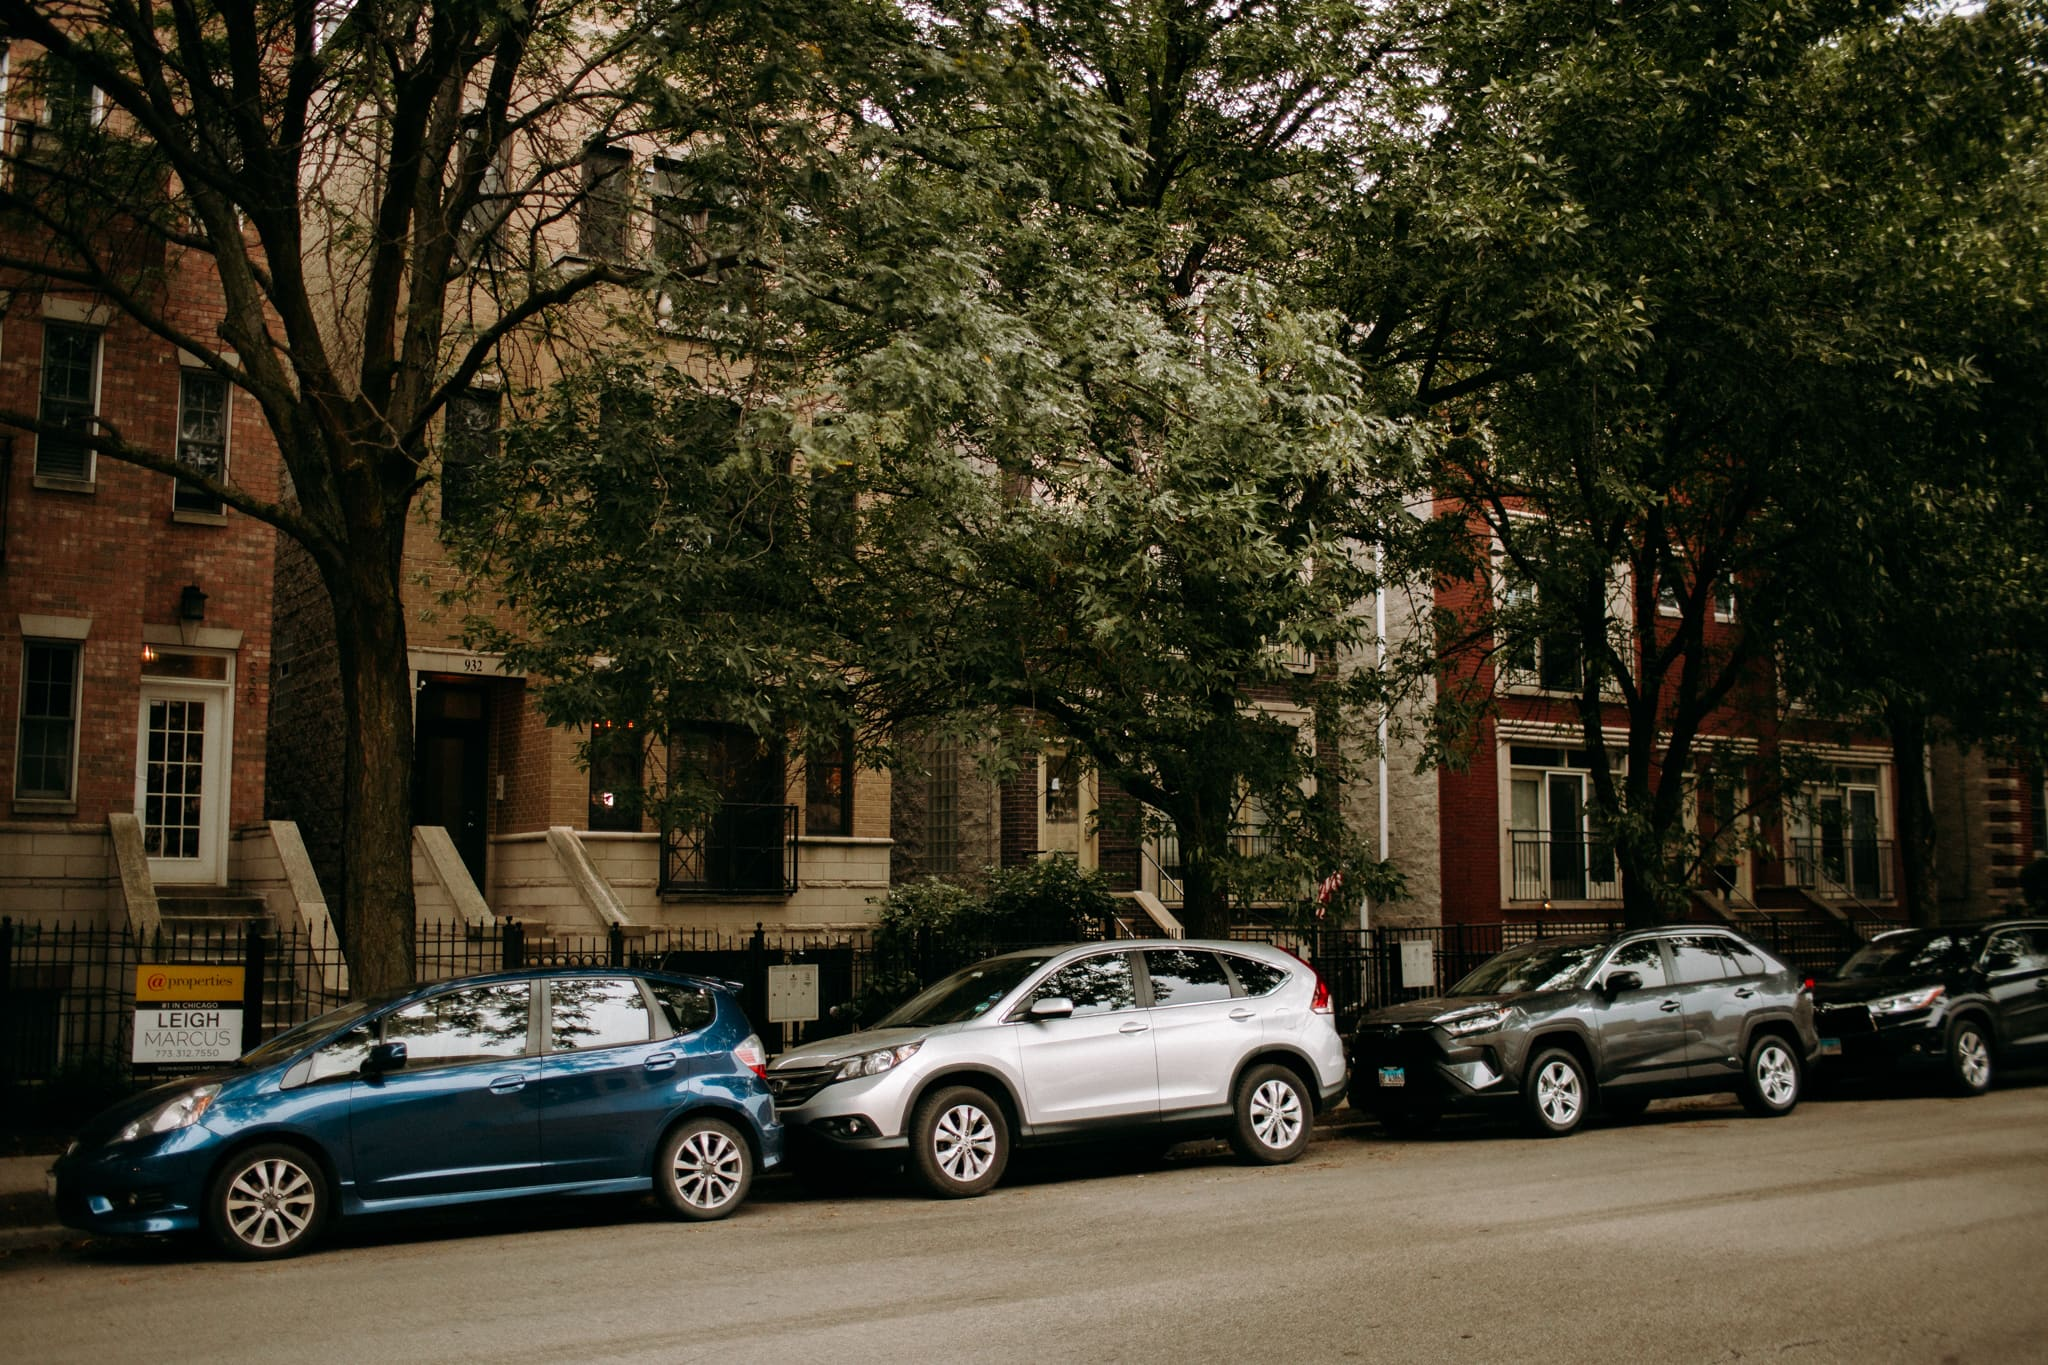 cars on a chicago street in a neighbourhood